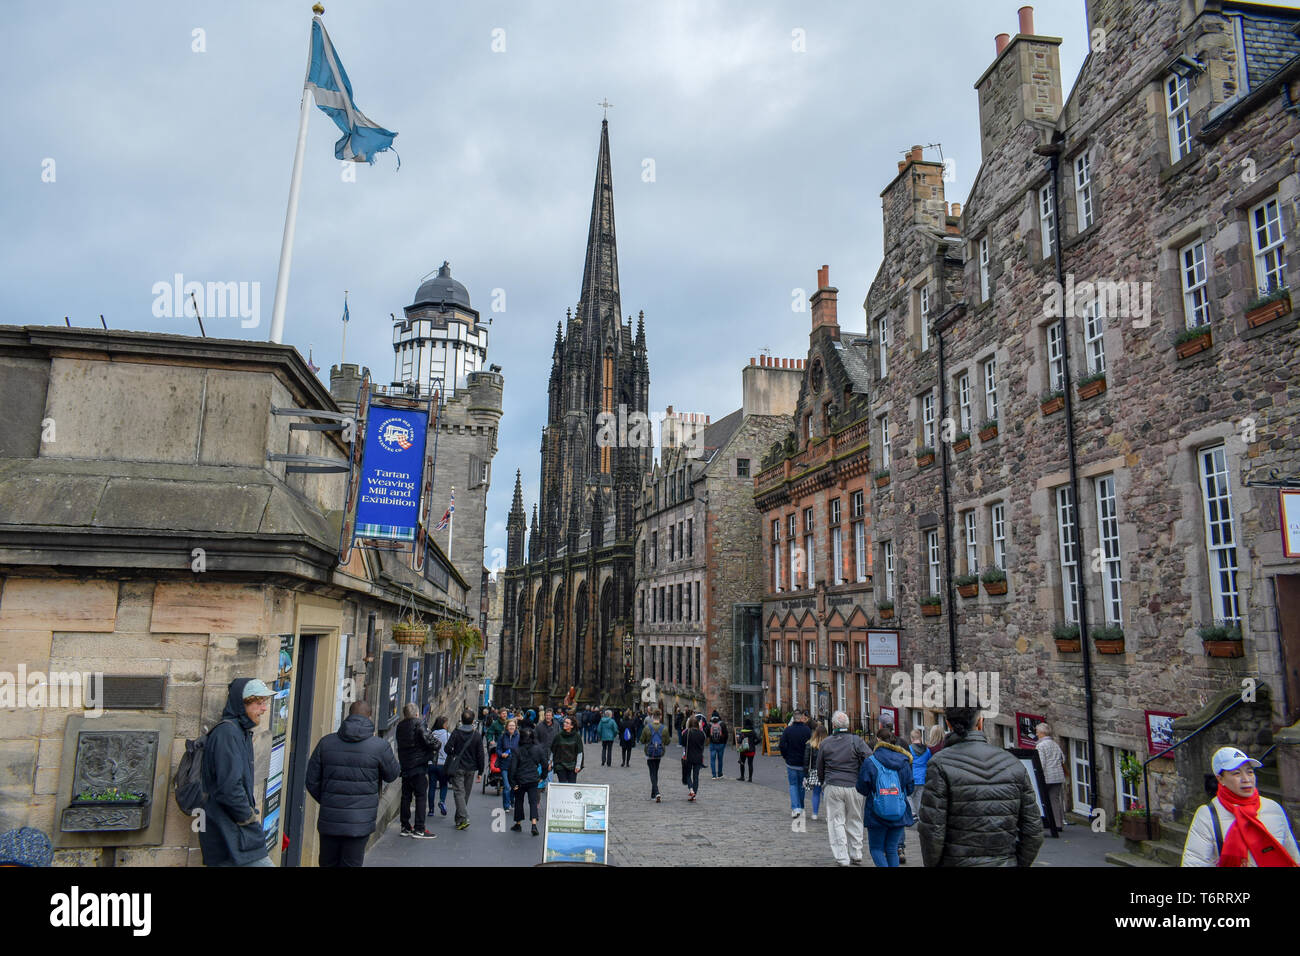 EDINBURGH, SCOTLAND - SEPTEMBER 09, 2018: Edinburgh's busy Royal Mile (The Highstreet) is one of the most iconic streets in Scotland and a mayor touri - Stock Image